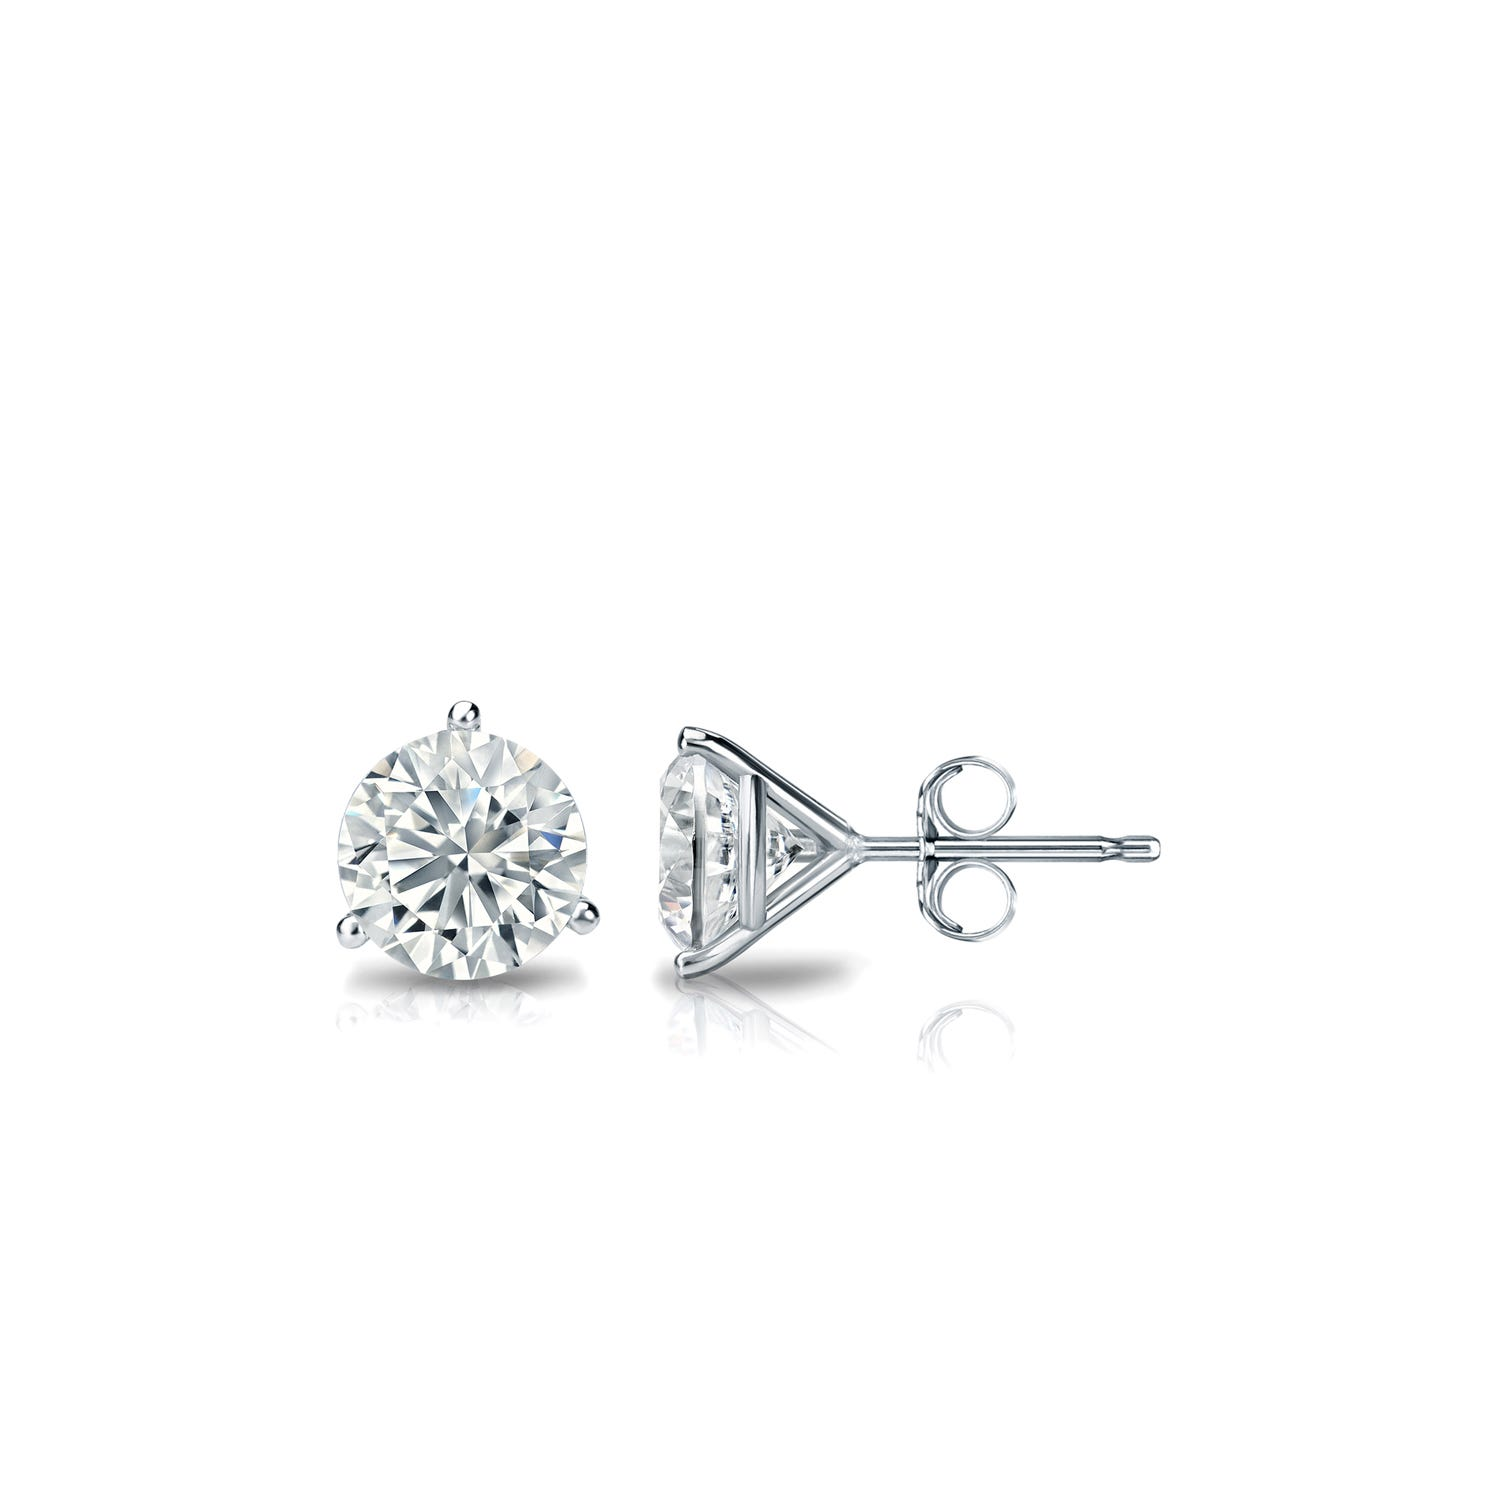 3/8 CTTW Round Diamond Solitaire Stud Earrings IJ SI1 in Platinum 3-Prong Setting